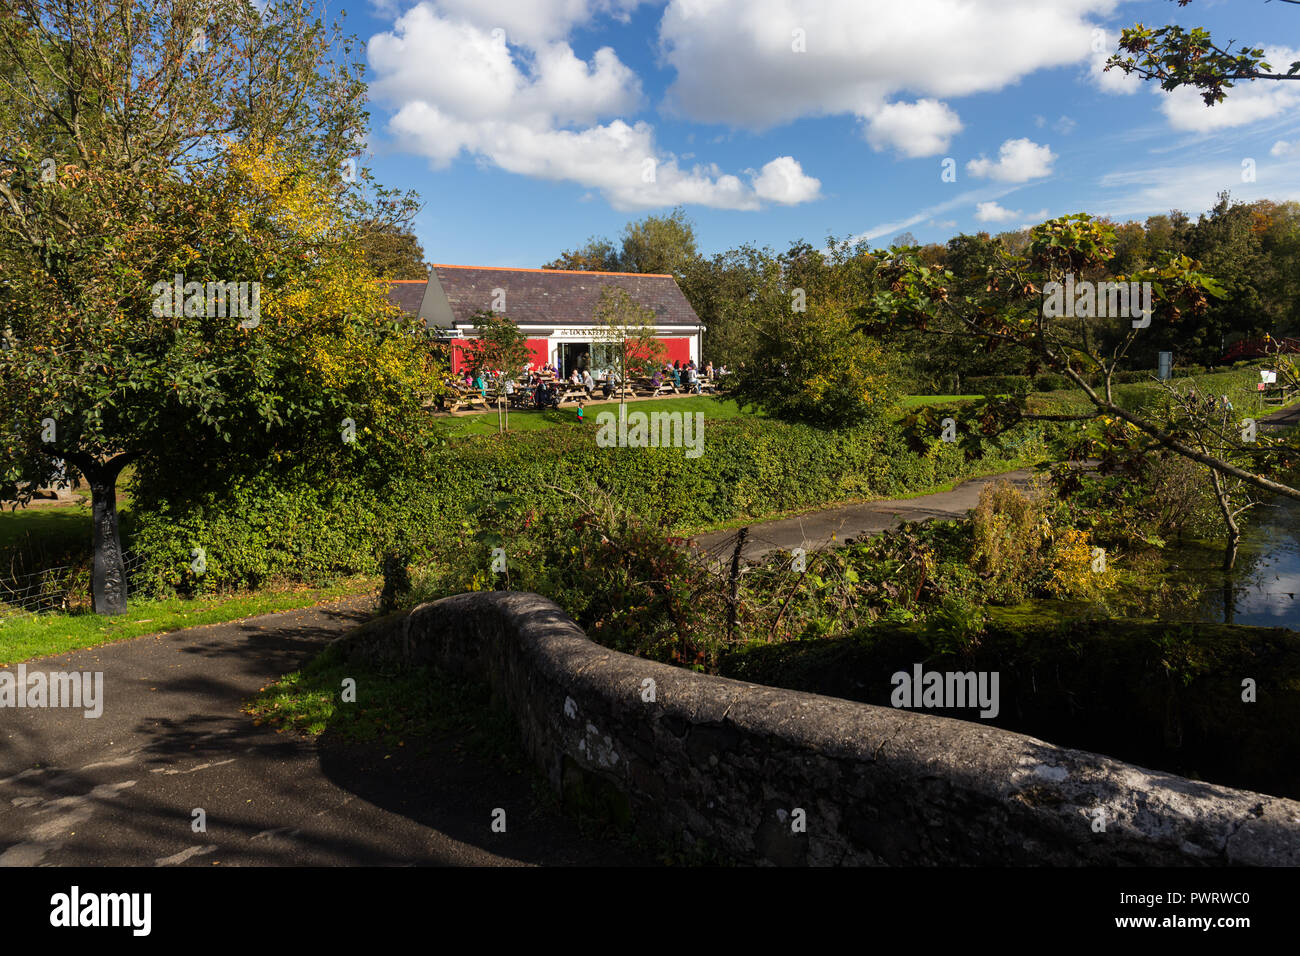 The Lock Keeper's Inn cafe on the Lagan towpath in Lagan Valley Regional Park near Shaws Bridge, Belfast,  N.Ireland. - Stock Image